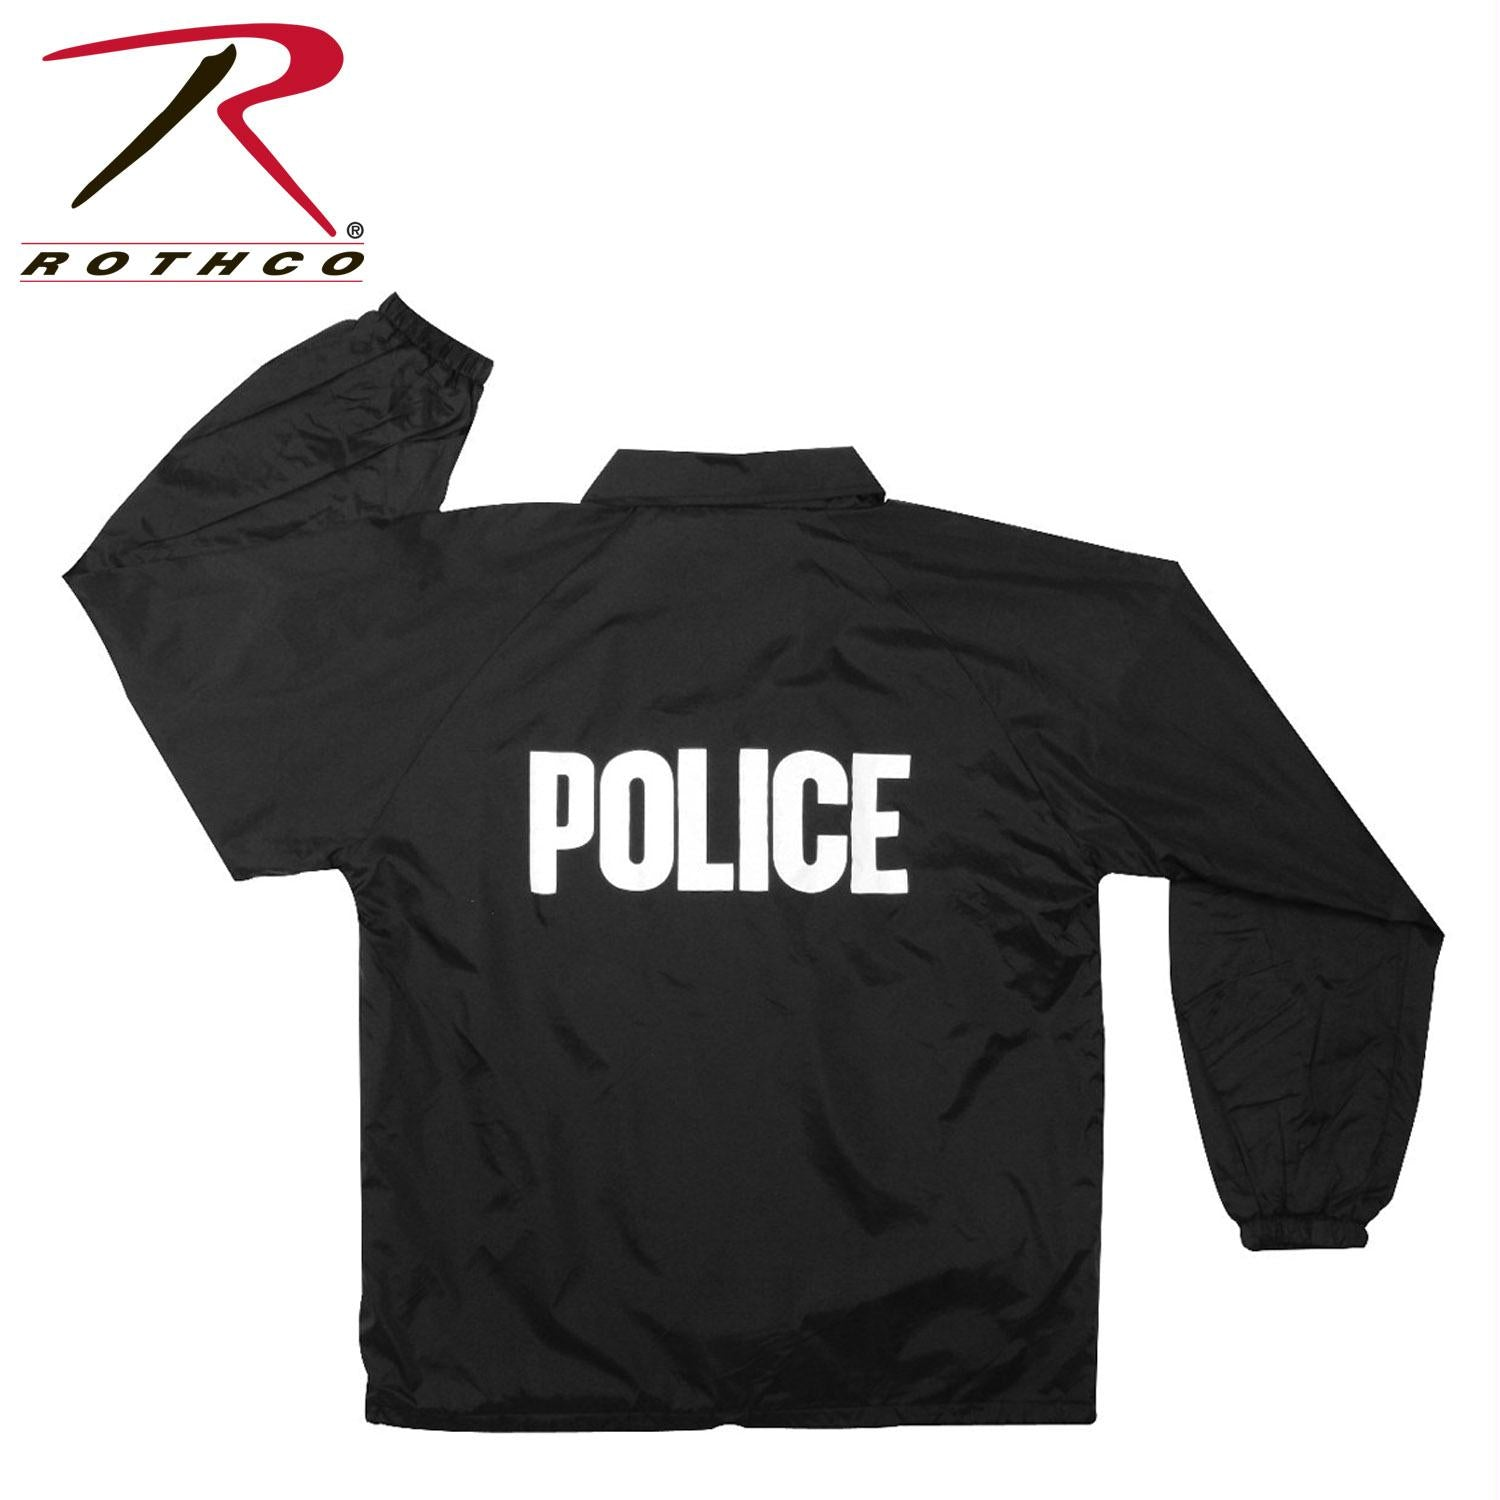 Rothco Lined Coaches Police Jacket - 2XL